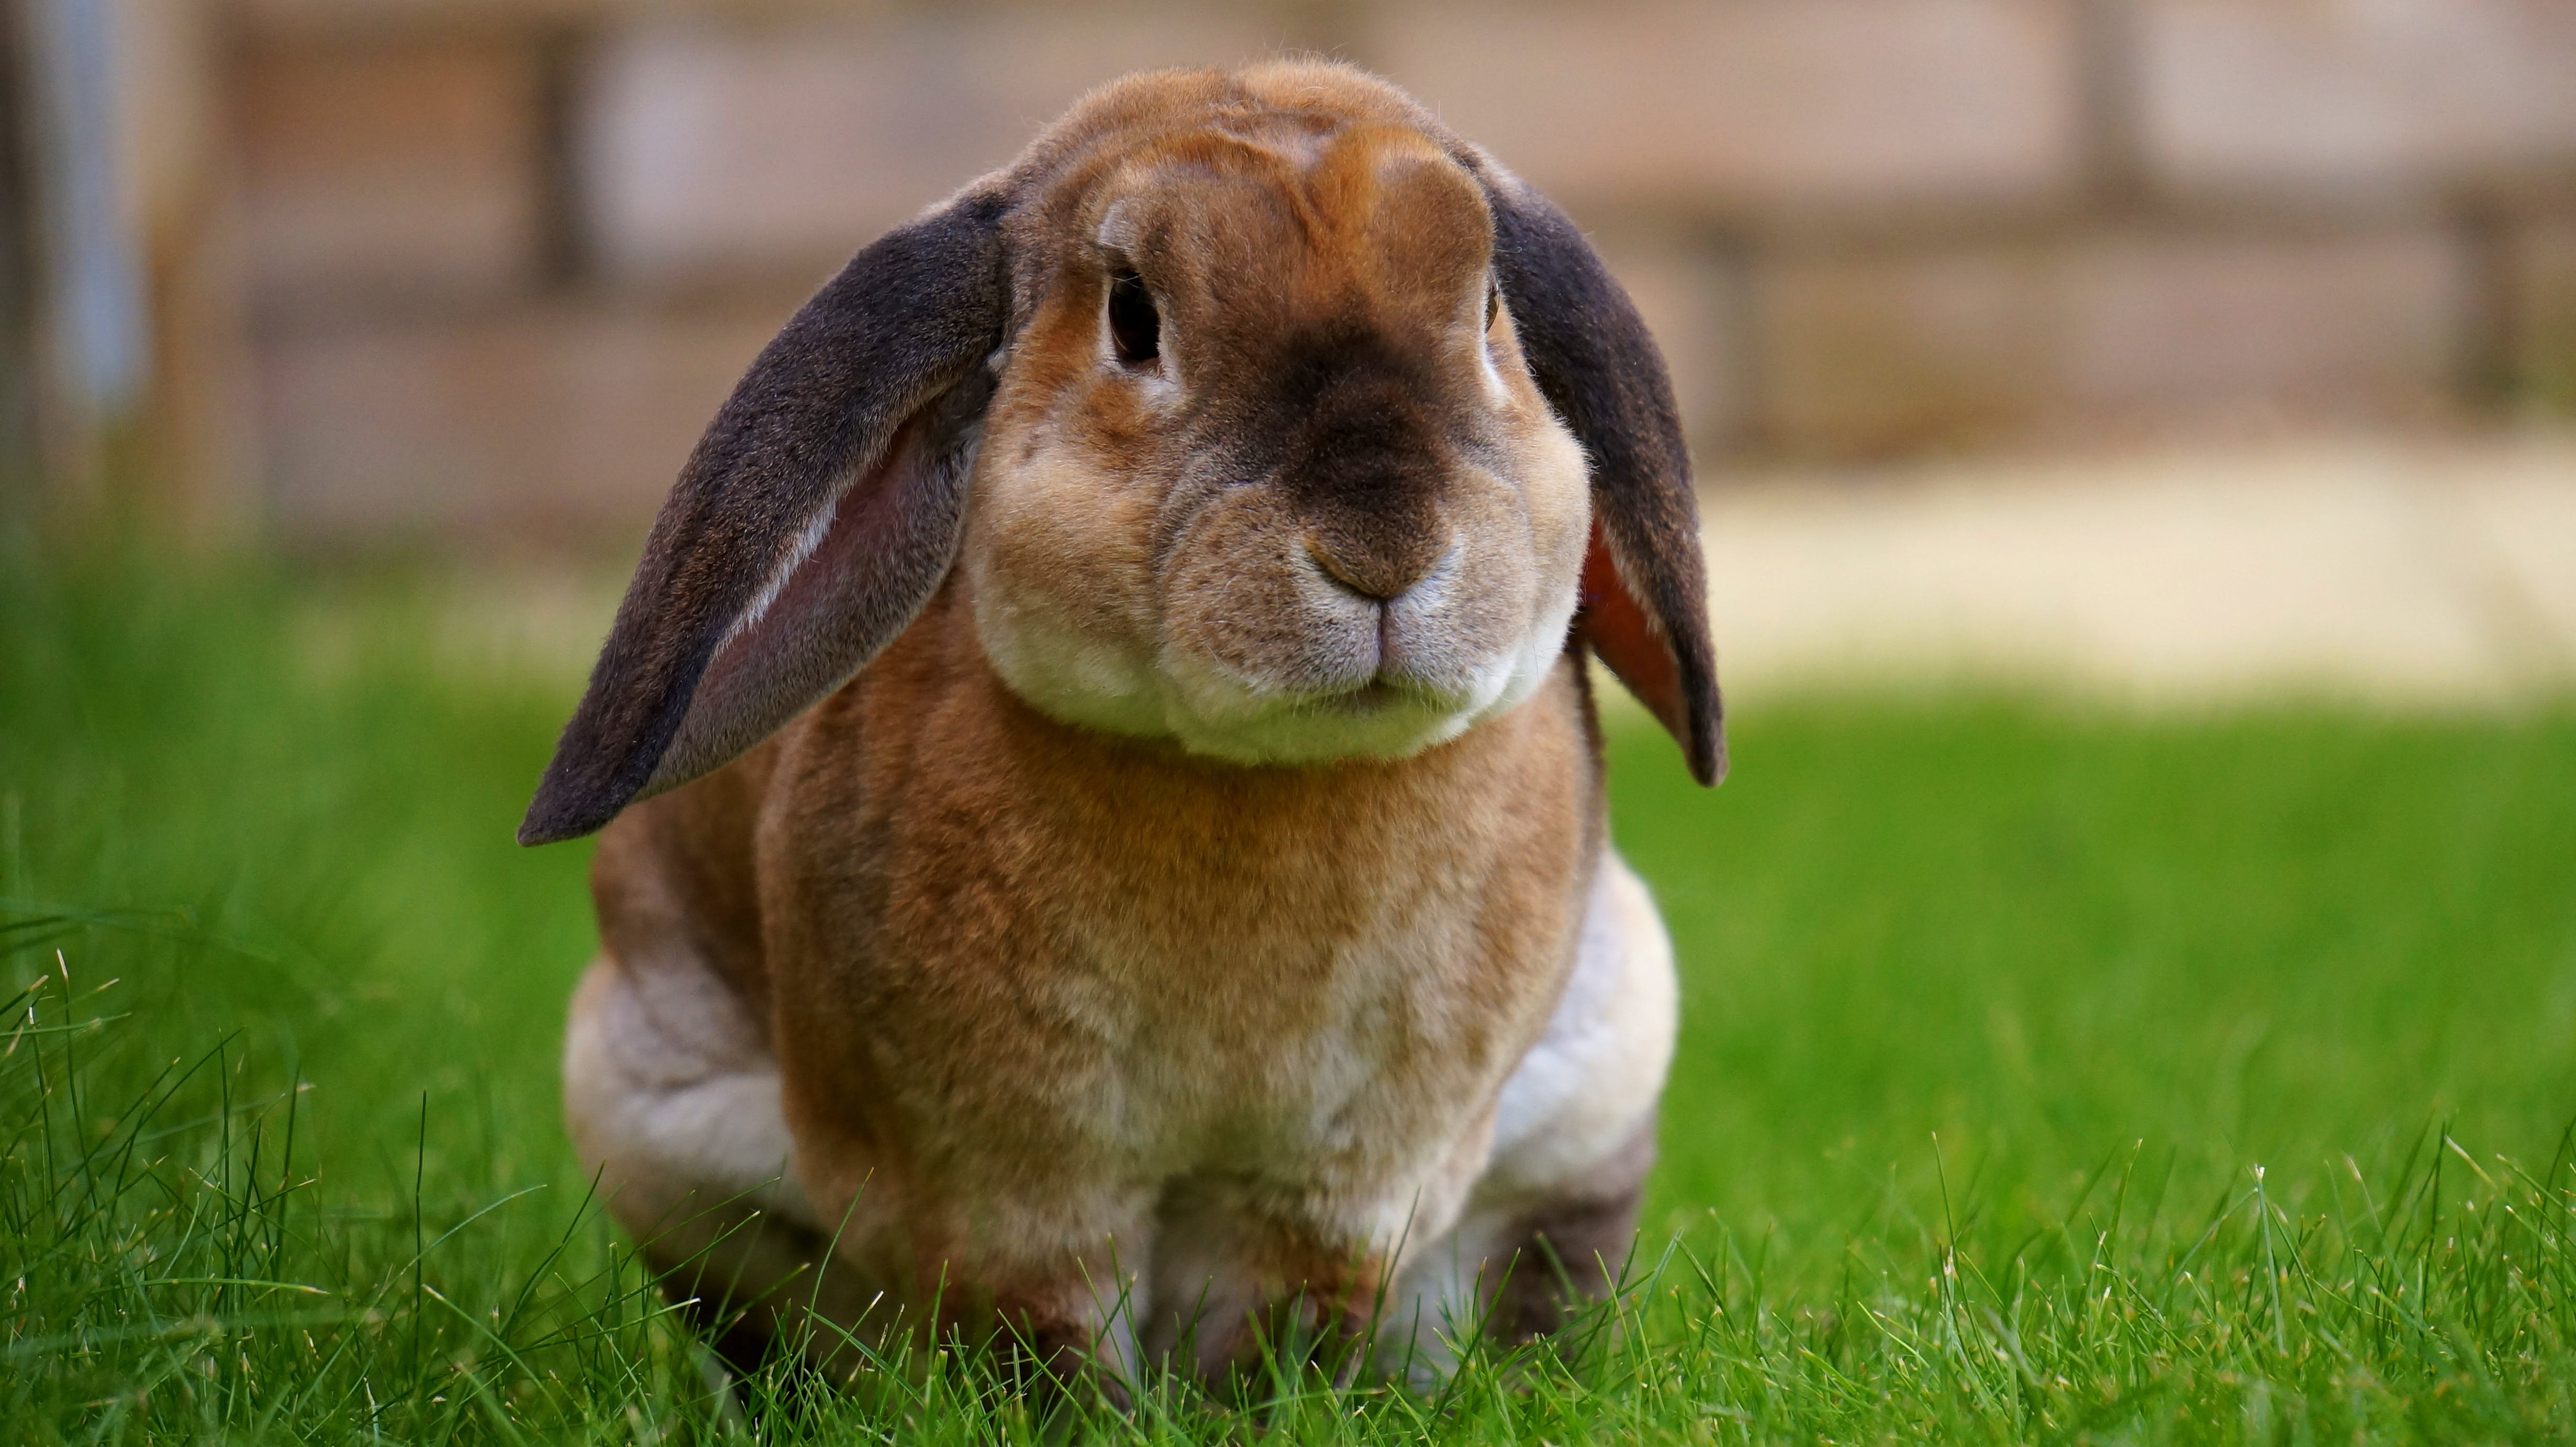 Beige Rabbit Resting on Green Grasses during Daytime